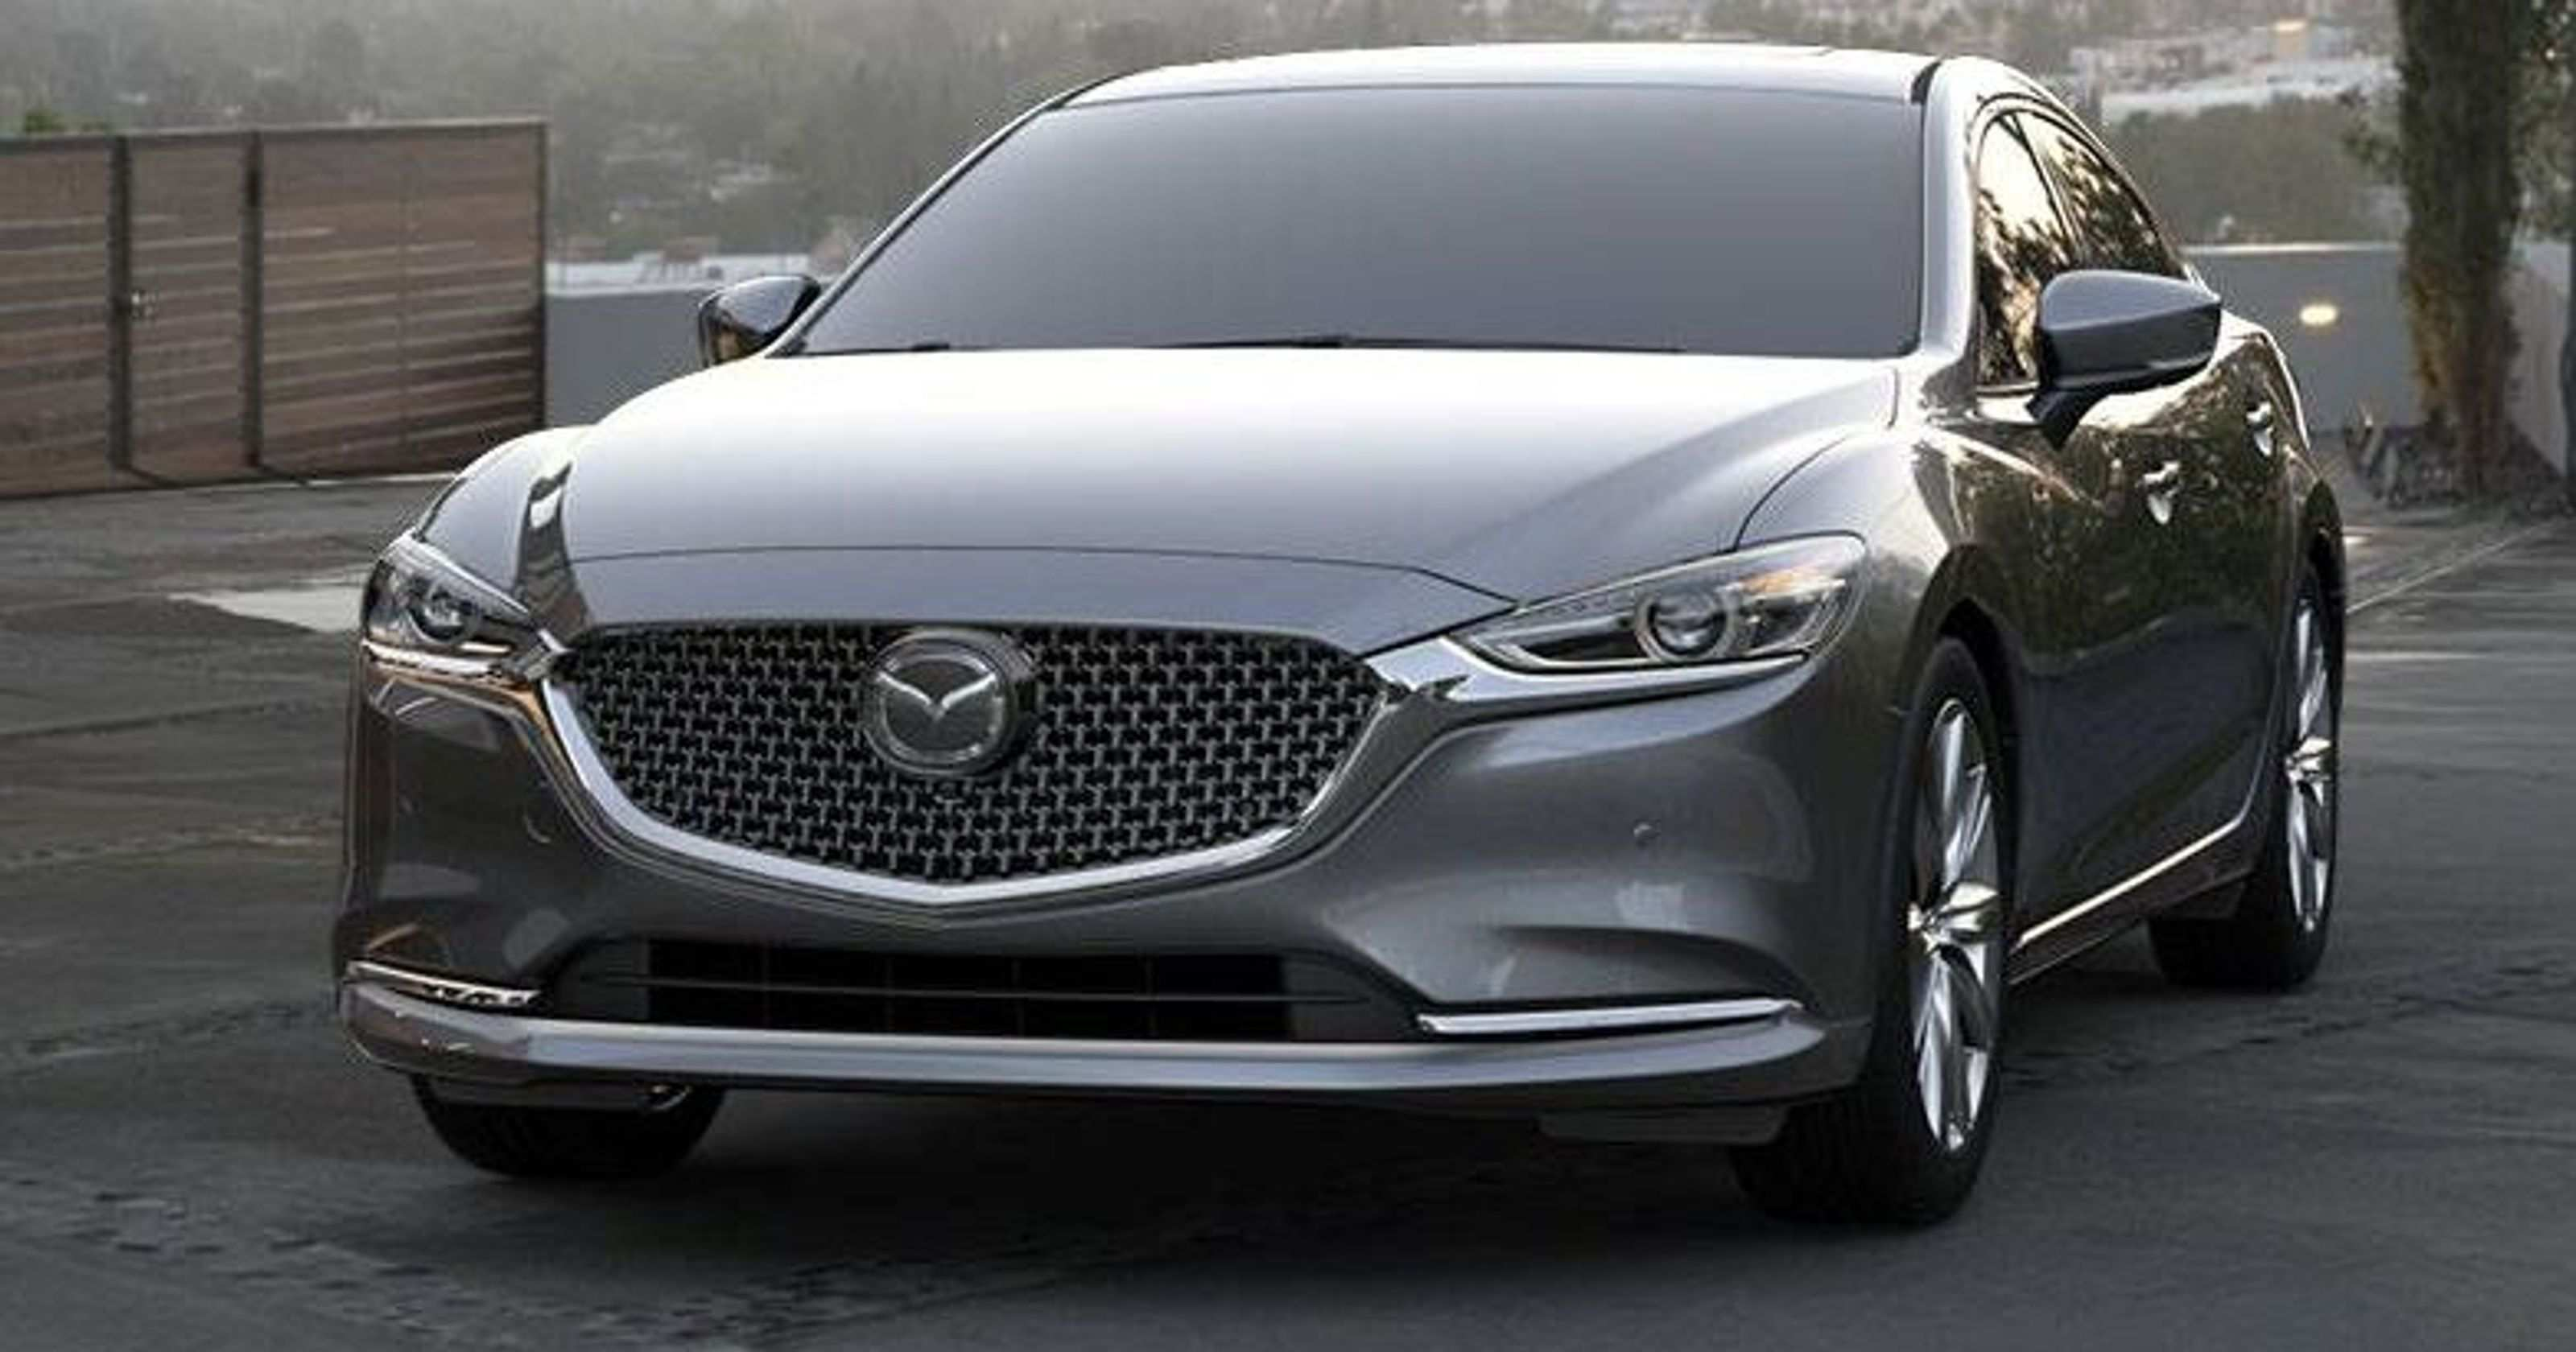 85 Gallery of Mazda 6 2020 Hp First Drive for Mazda 6 2020 Hp